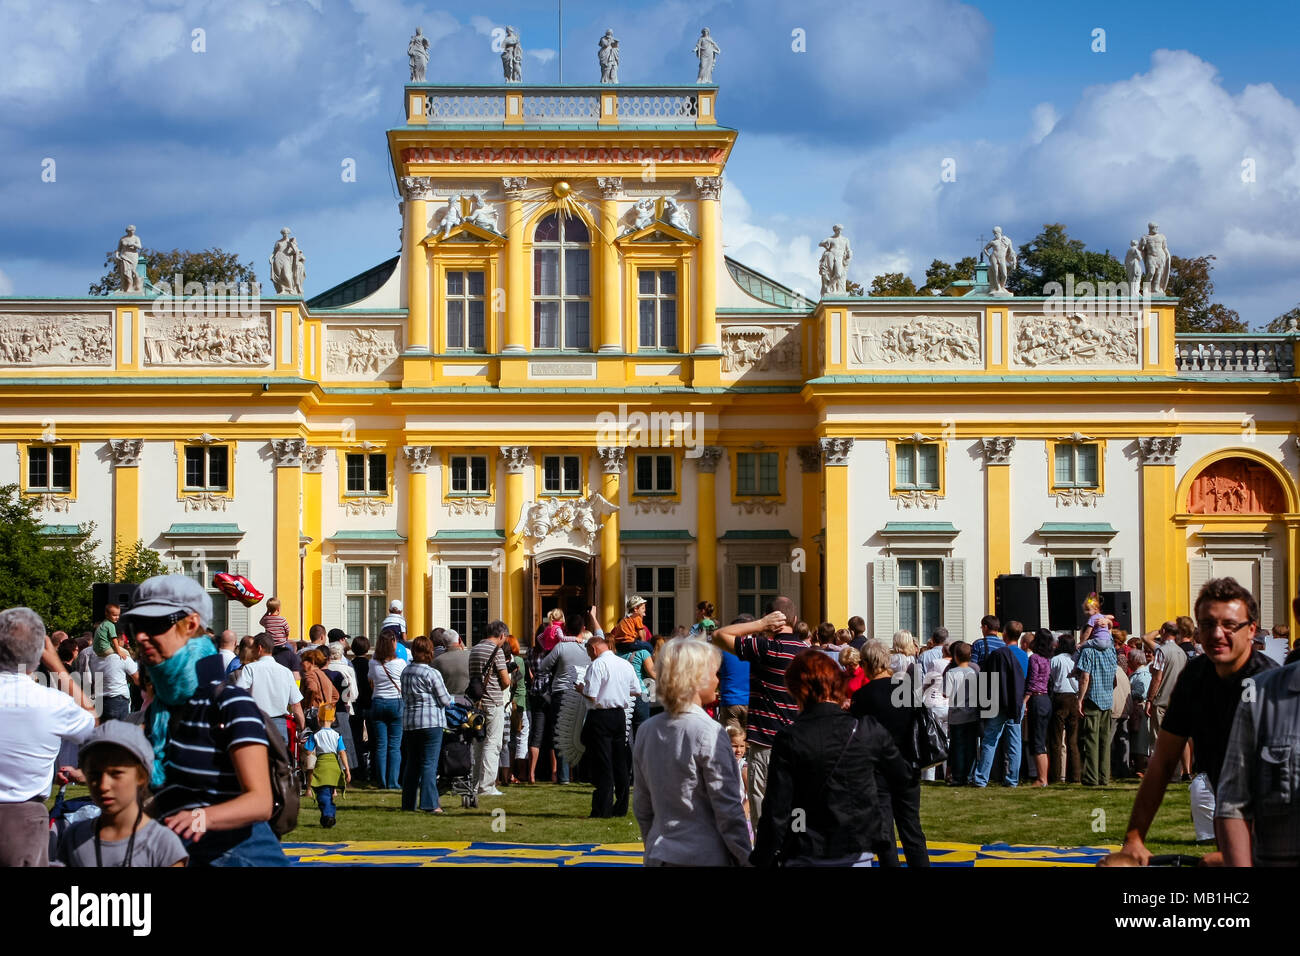 Tourists crowd at the Wilanow Royal Palace museum, celebrating the Wilanow Days. WARSAW, POLAND - SEPTEMBER 13, 2009 - Stock Image